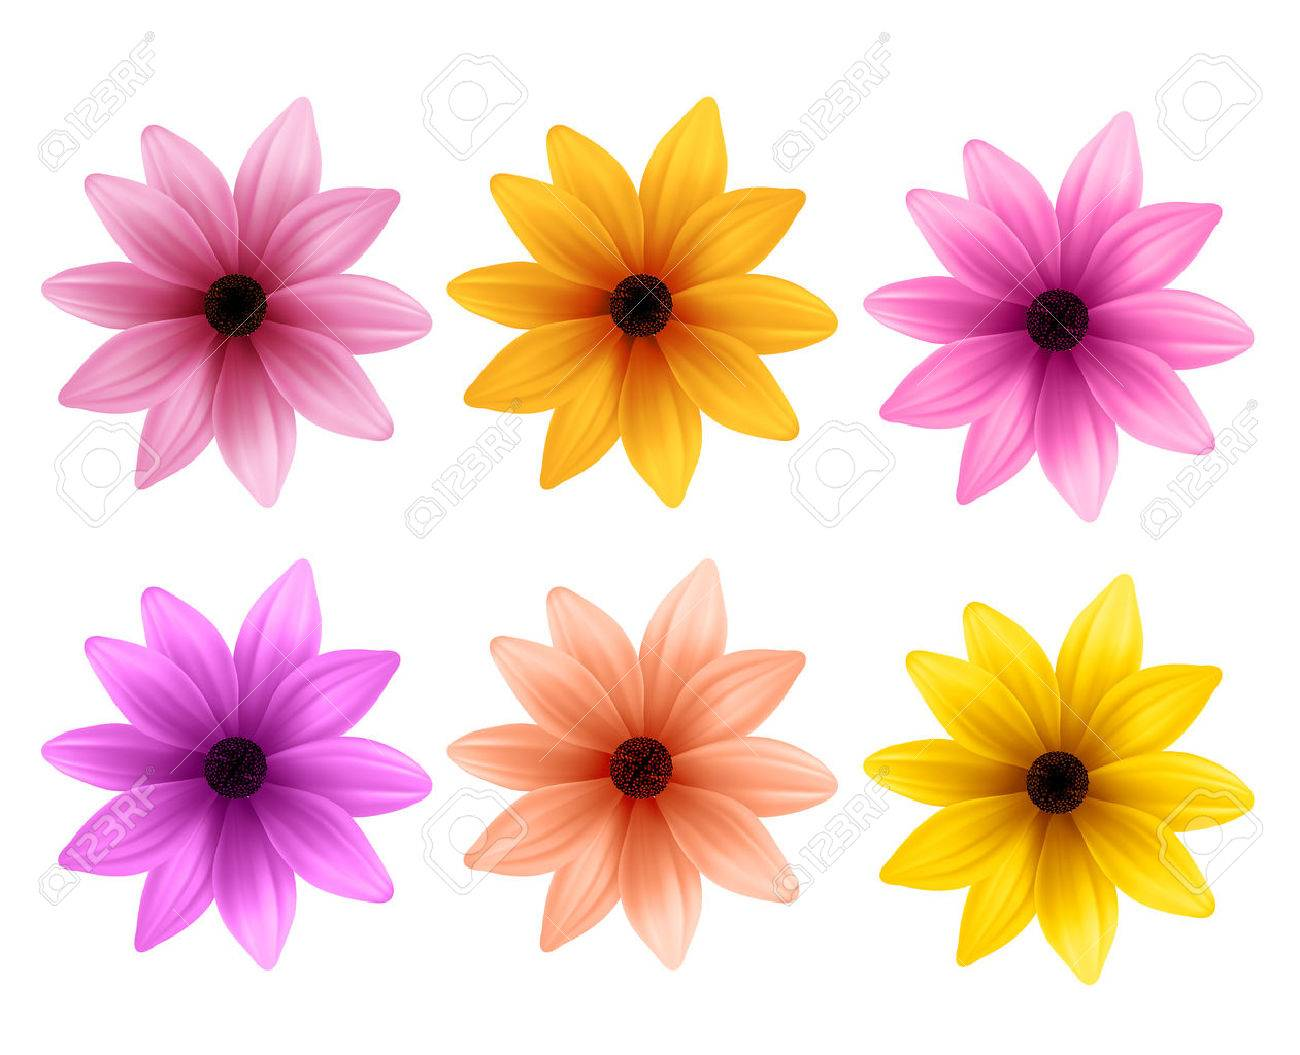 Realistic 3D Set of Colorful Daisy Flowers for Spring Season Isolated in White Background. Vector Illustration - 51701020